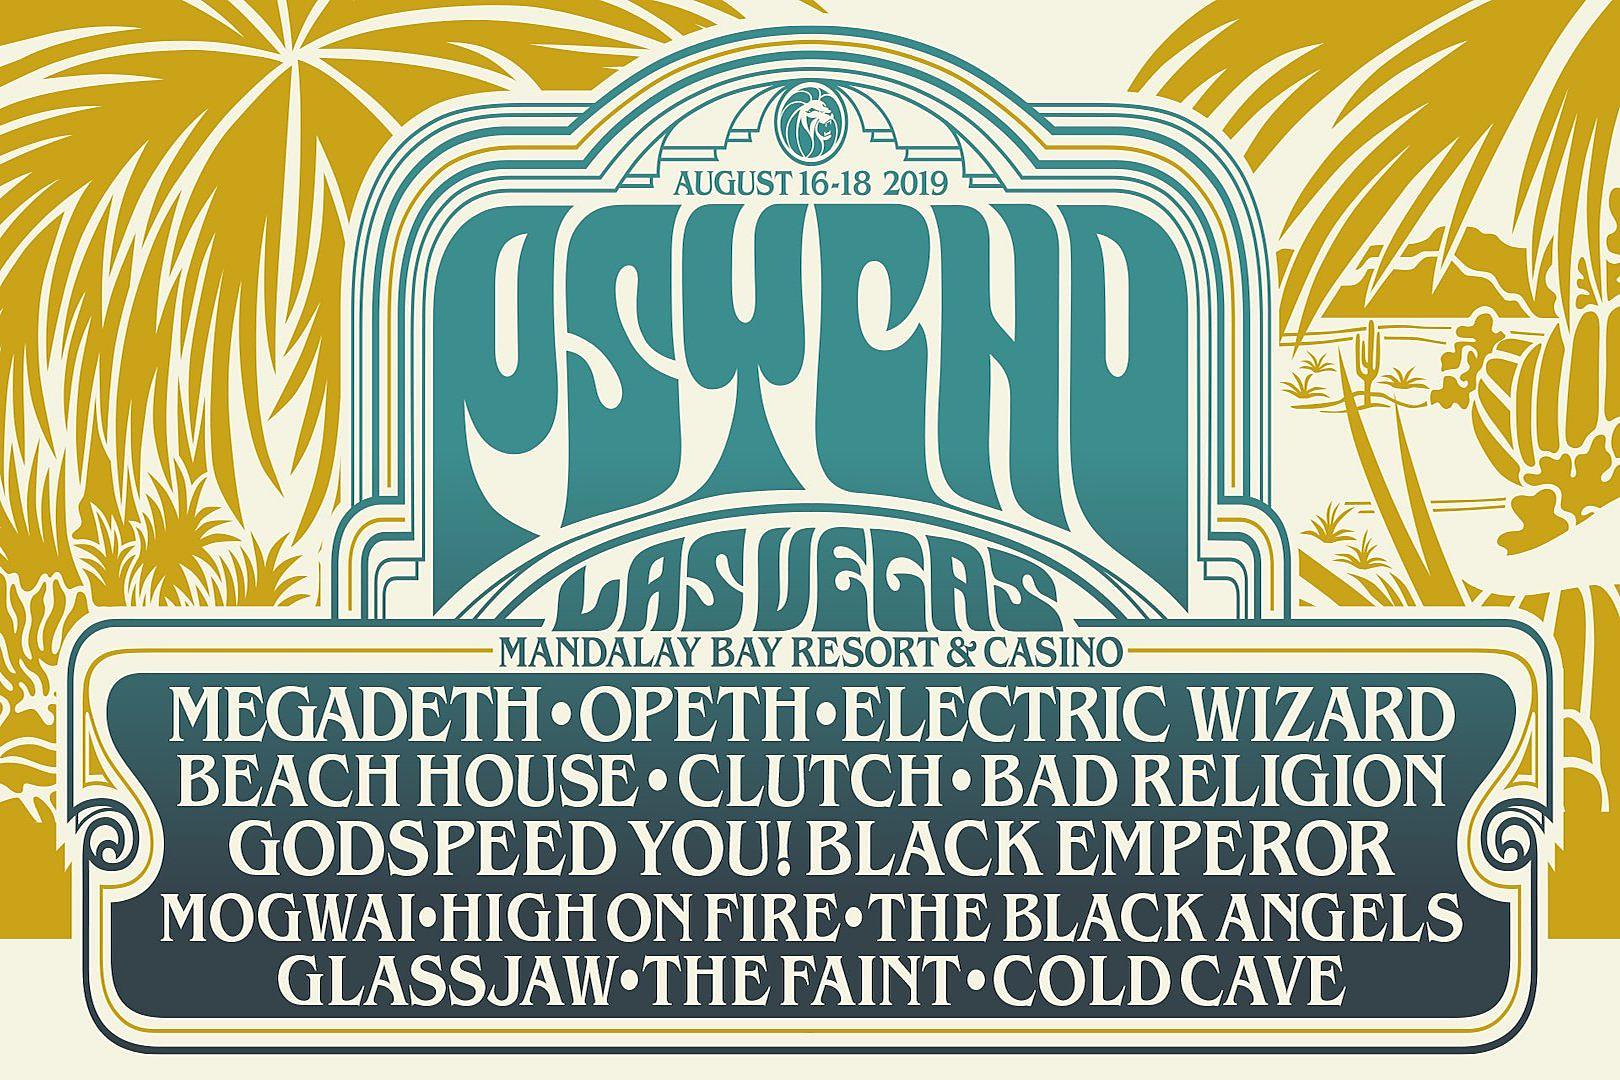 Megadeth, Opeth Added as 2019 Psycho Las Vegas Headliners